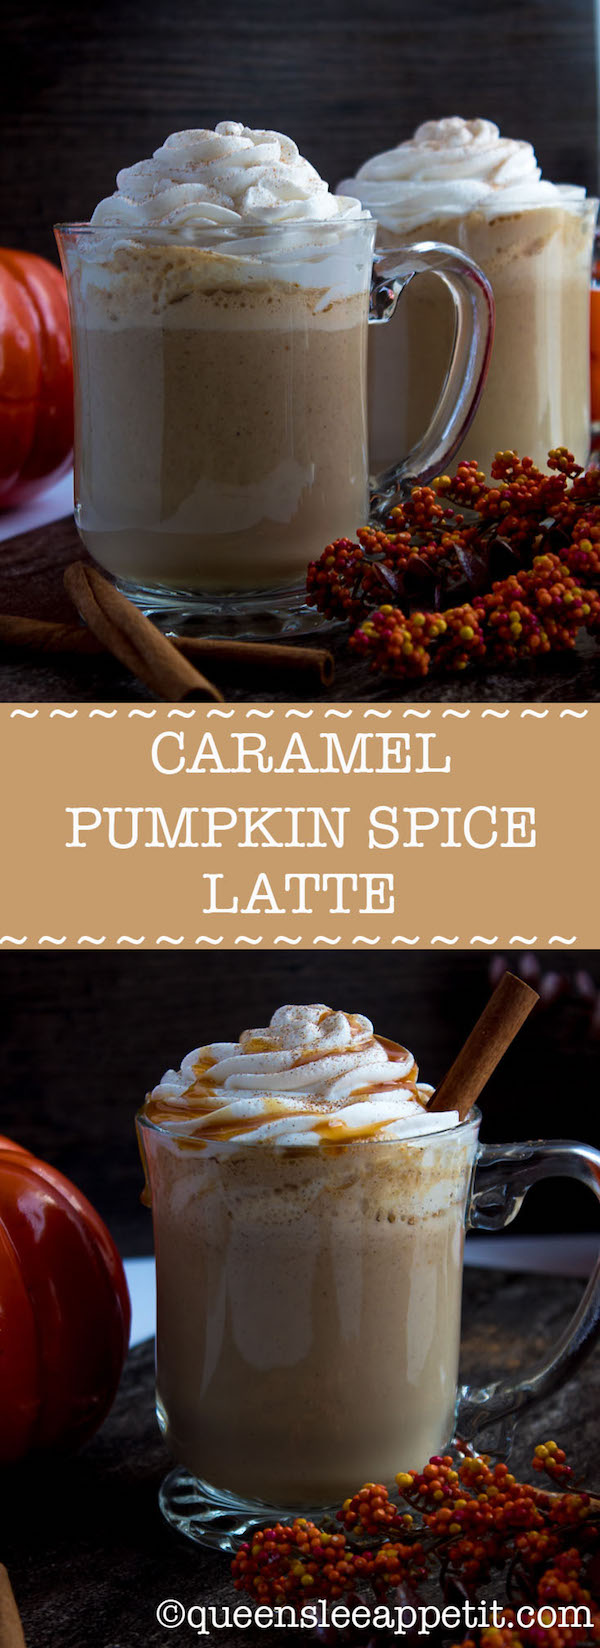 This Caramel Pumpkin Spice Latte is rich, creamy and loaded with pumpkin flavour. Whole milk flavoured with pumpkin purée, spices and caramel, then blended with freshly brewed espresso. This is the perfect drink for the fall season.